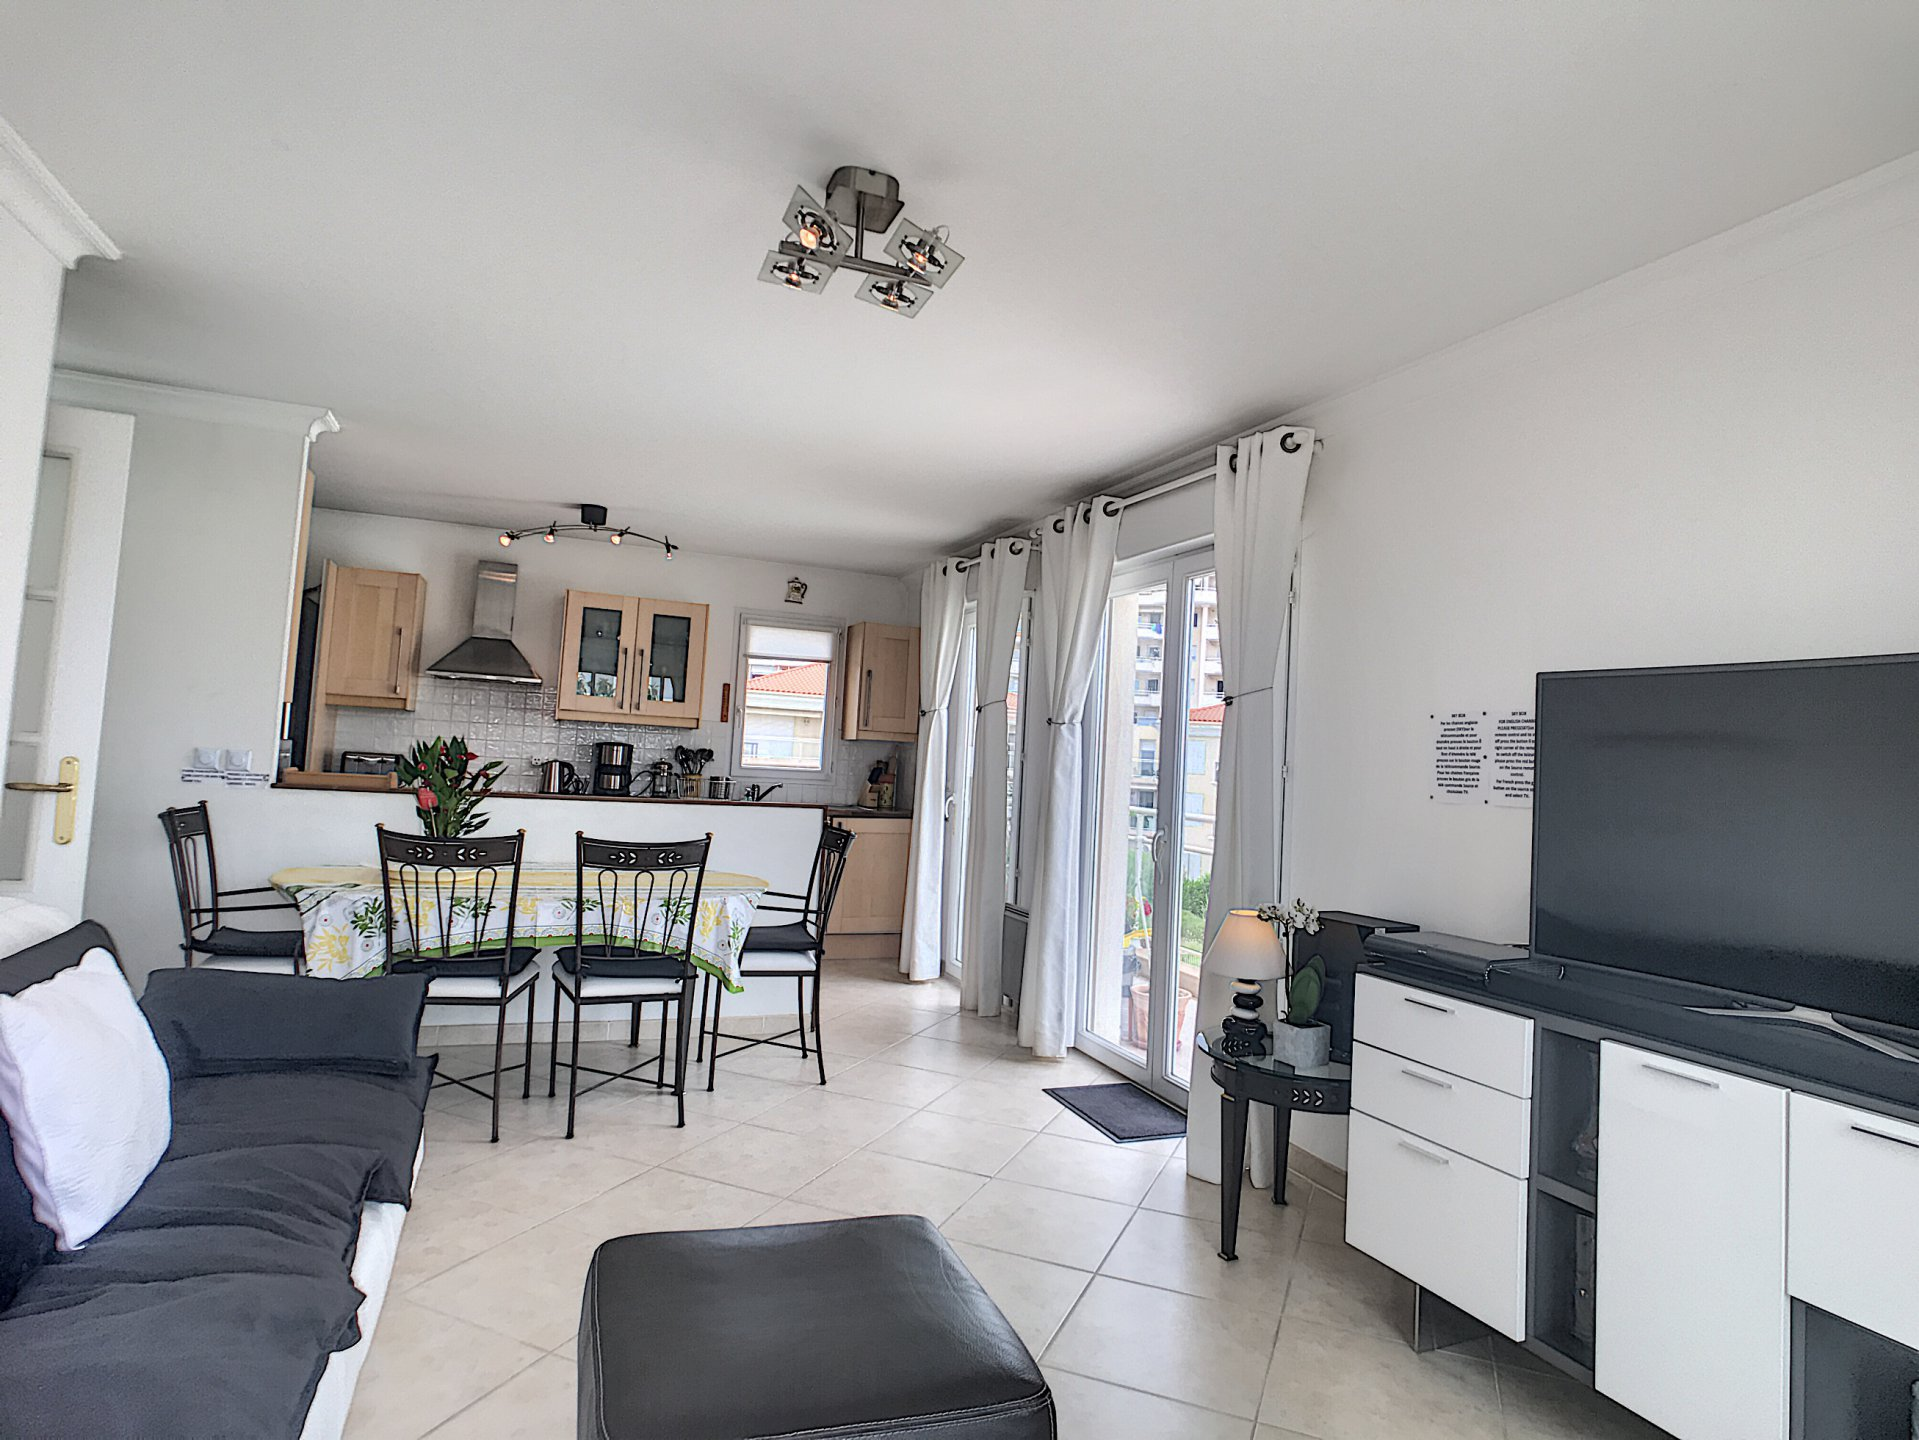 Nice 2-bed apartment, safe residence, pool, sea view, green area in Juan les Pins